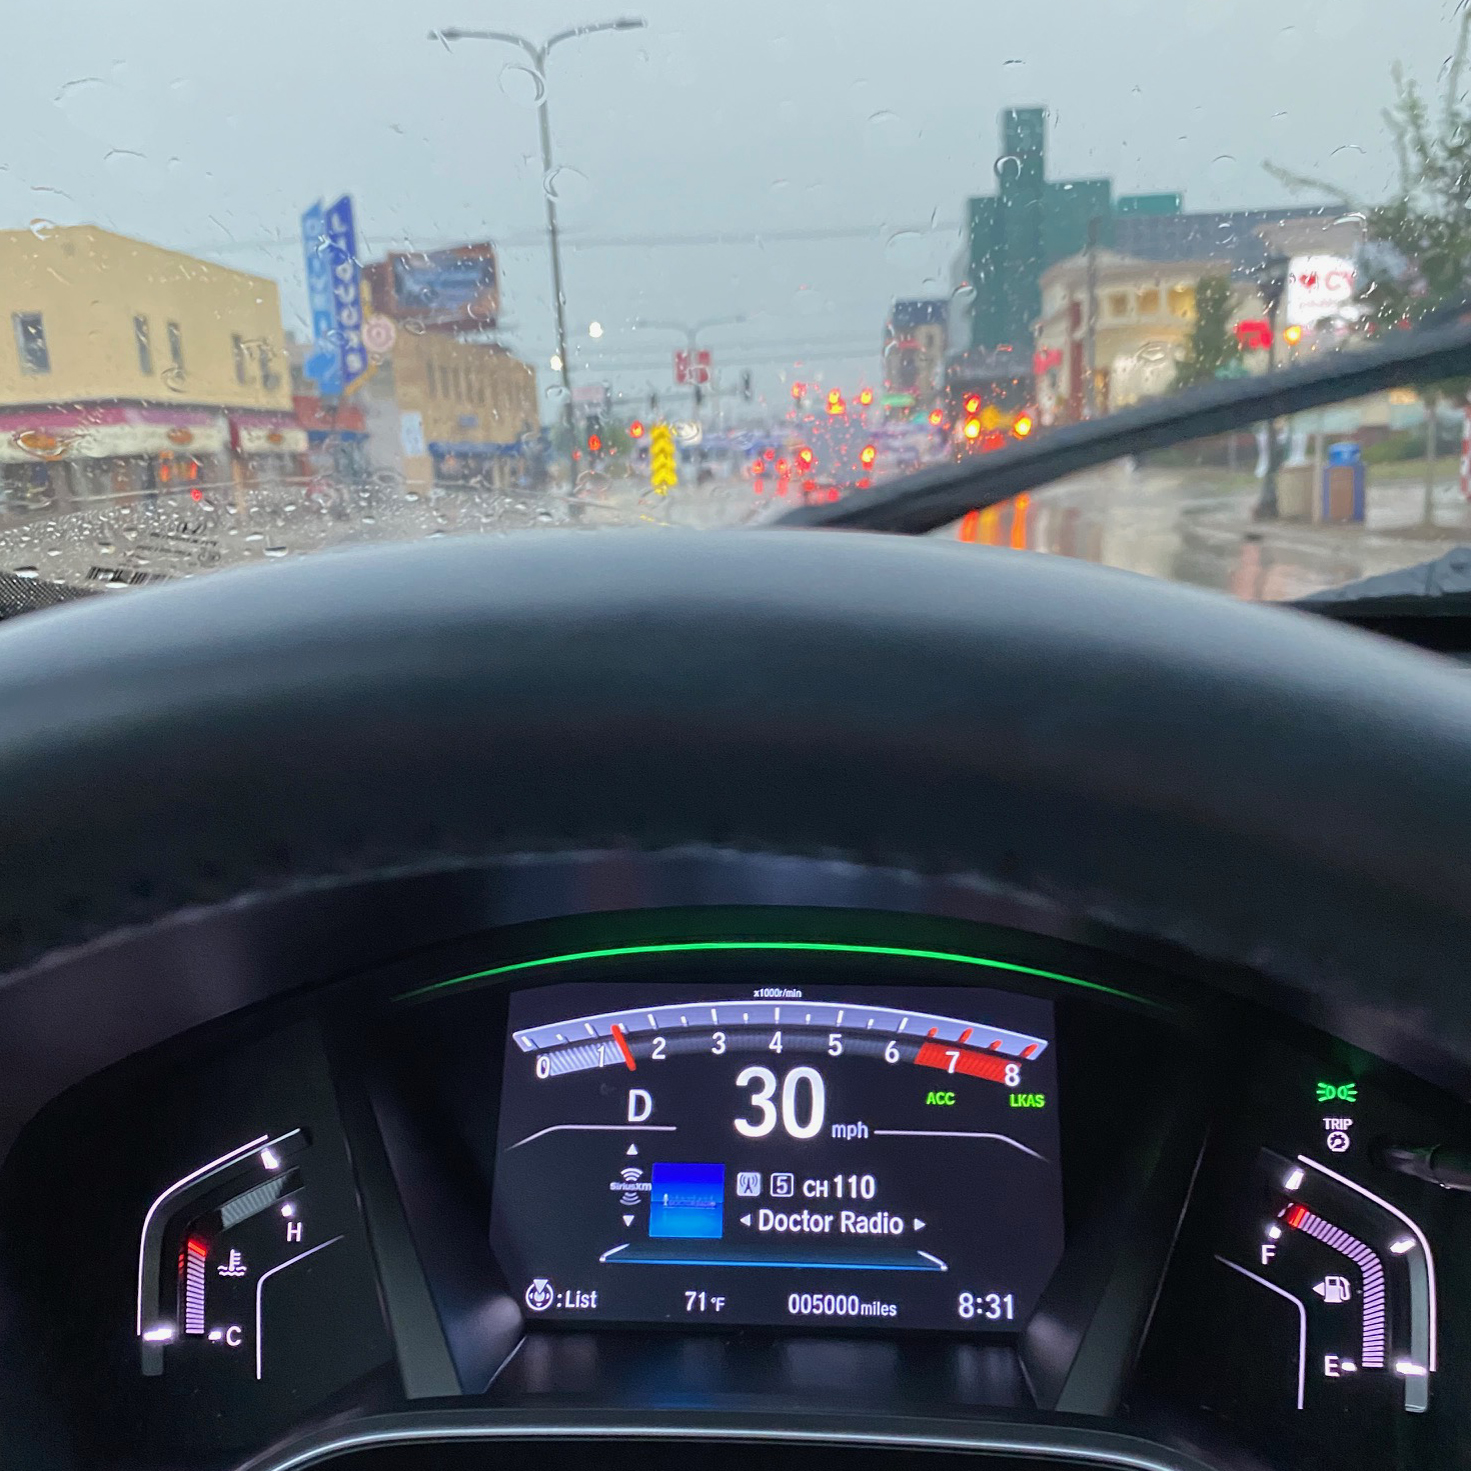 View of rainy street from behind windshield of vehicle. Dashboard in front has odometer that reads 5000 miles.